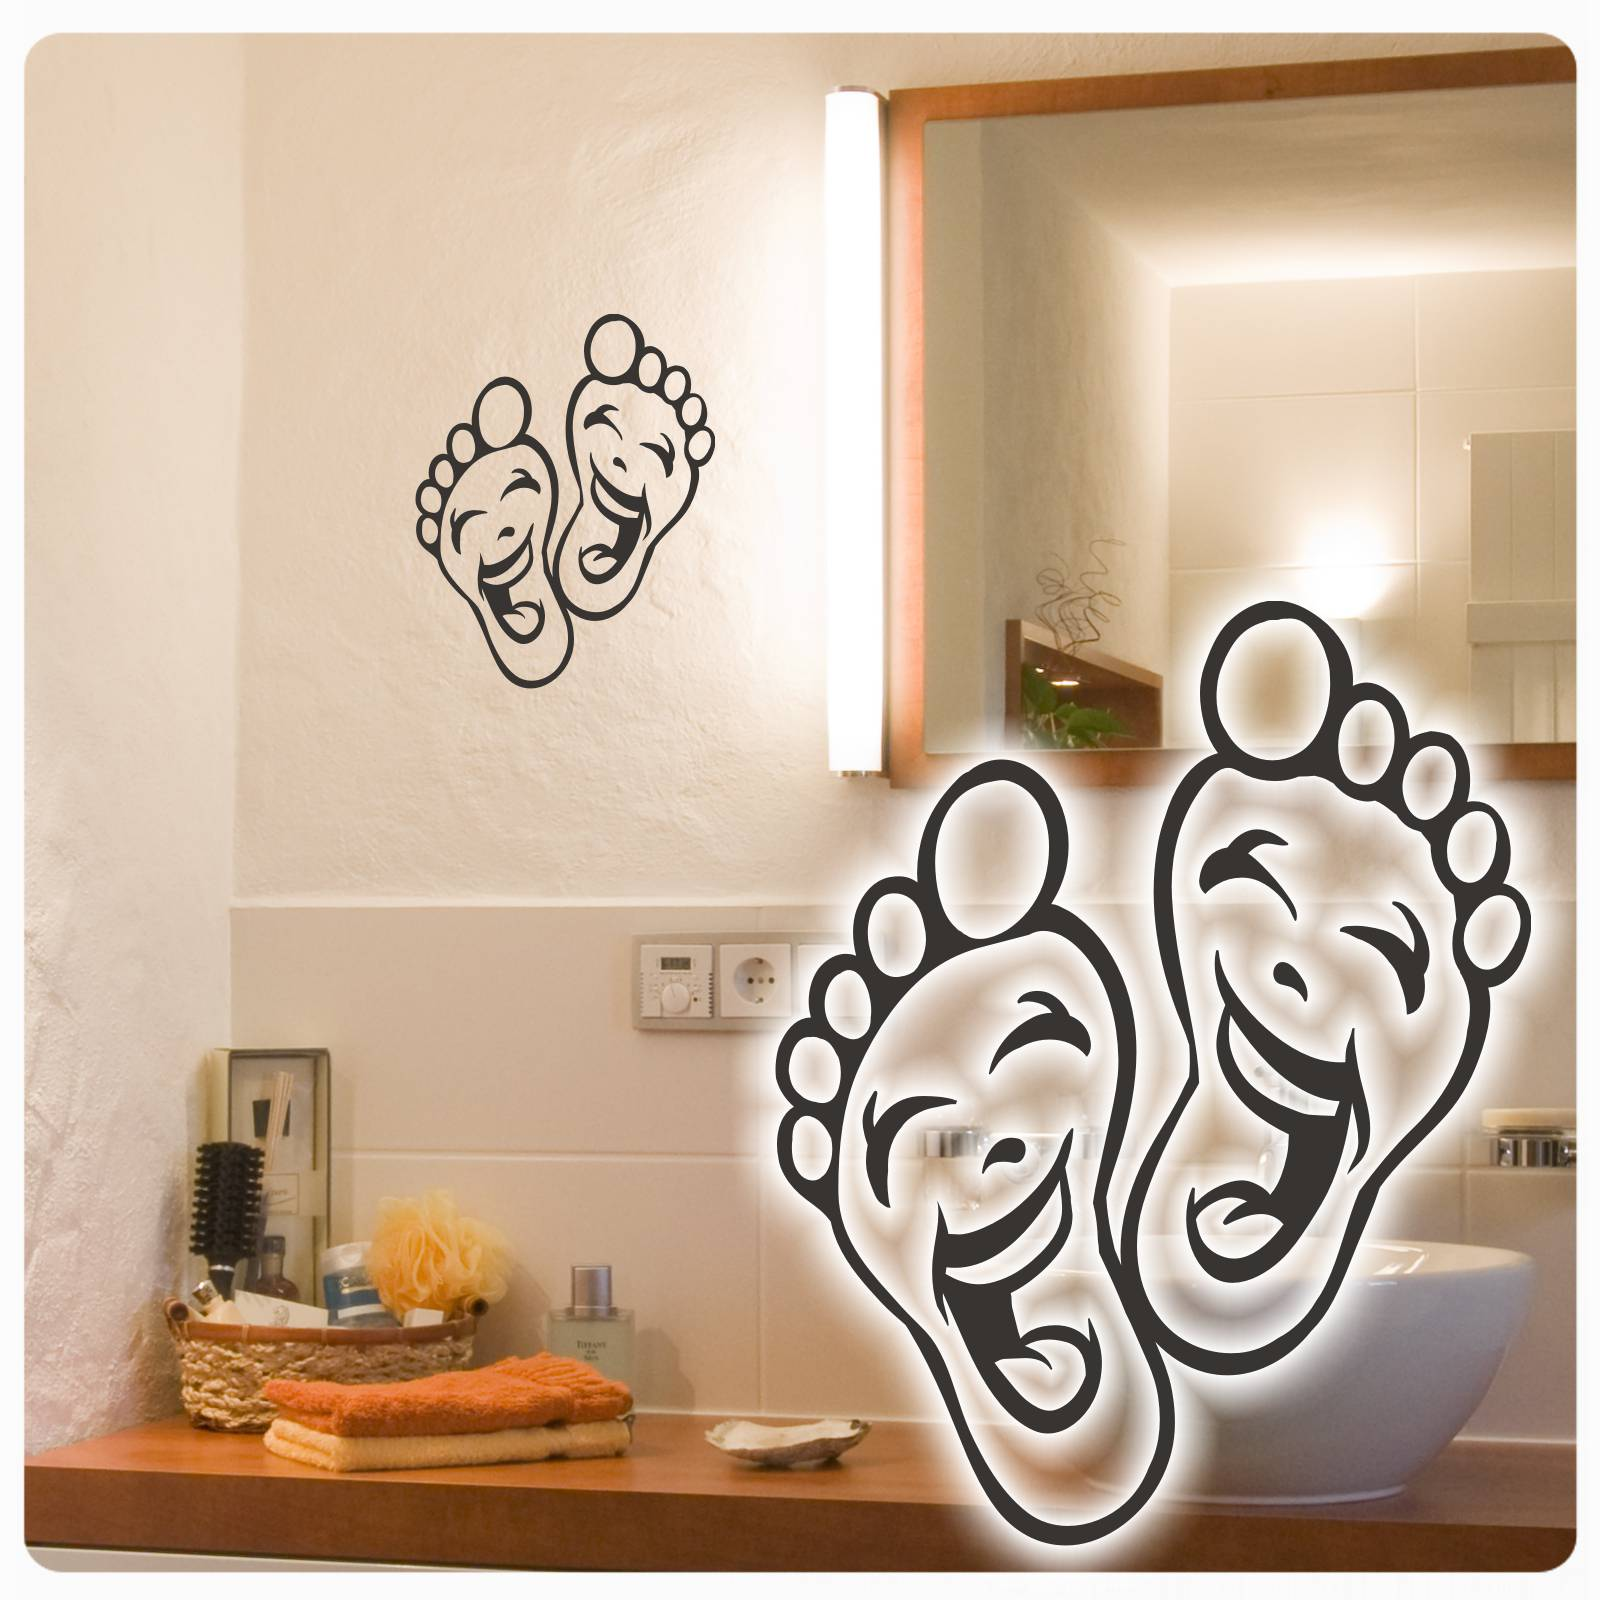 lustige f sse wandtattoo f e fu f sse sticker wandaufkleber walltattoo w1775 ebay. Black Bedroom Furniture Sets. Home Design Ideas